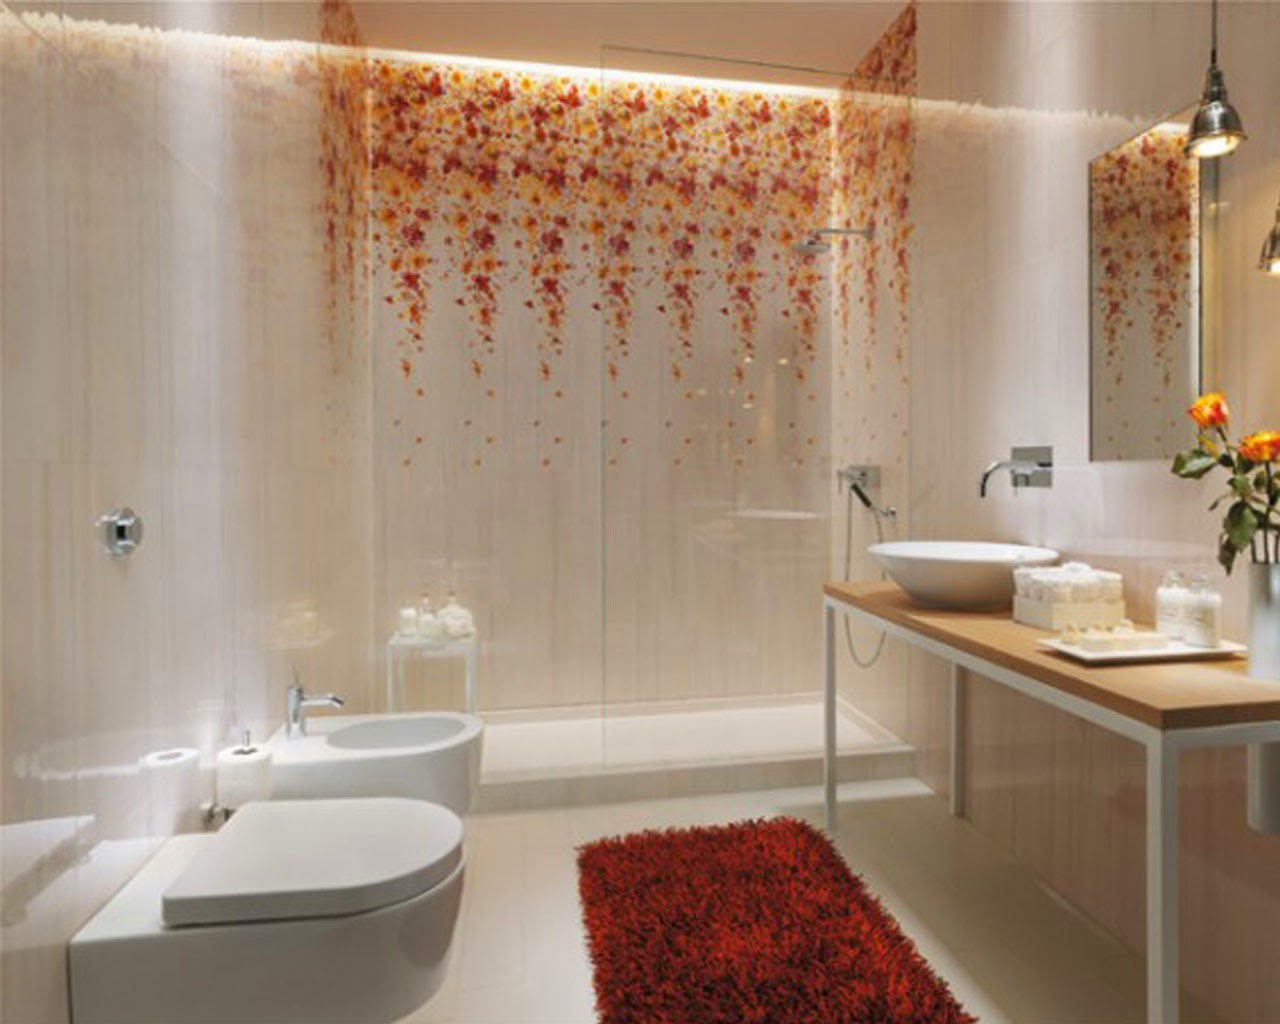 Bathroom Design Ideas For Interior Important Points Picture 01